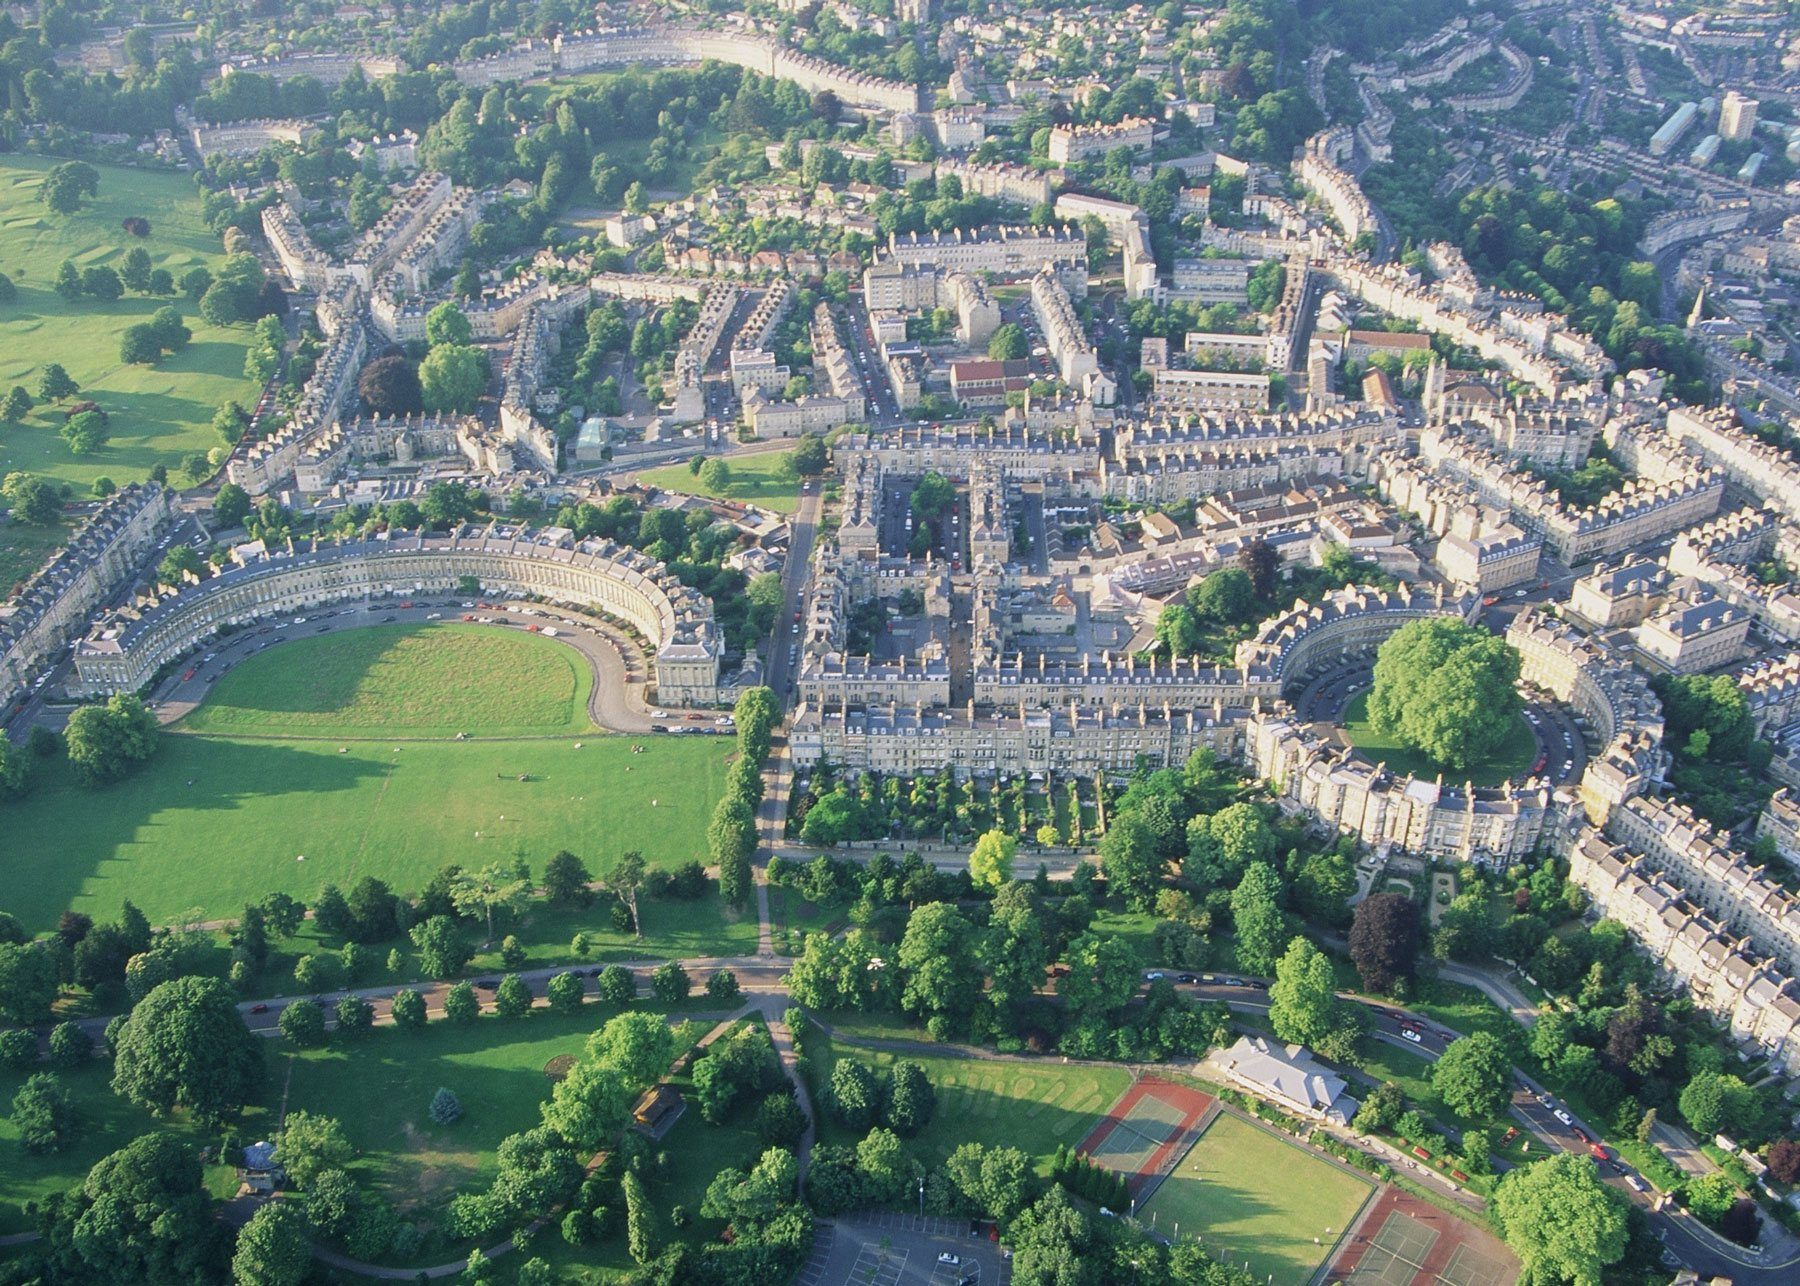 Bath Images world heritage site, bath – welcome to the world heritage site